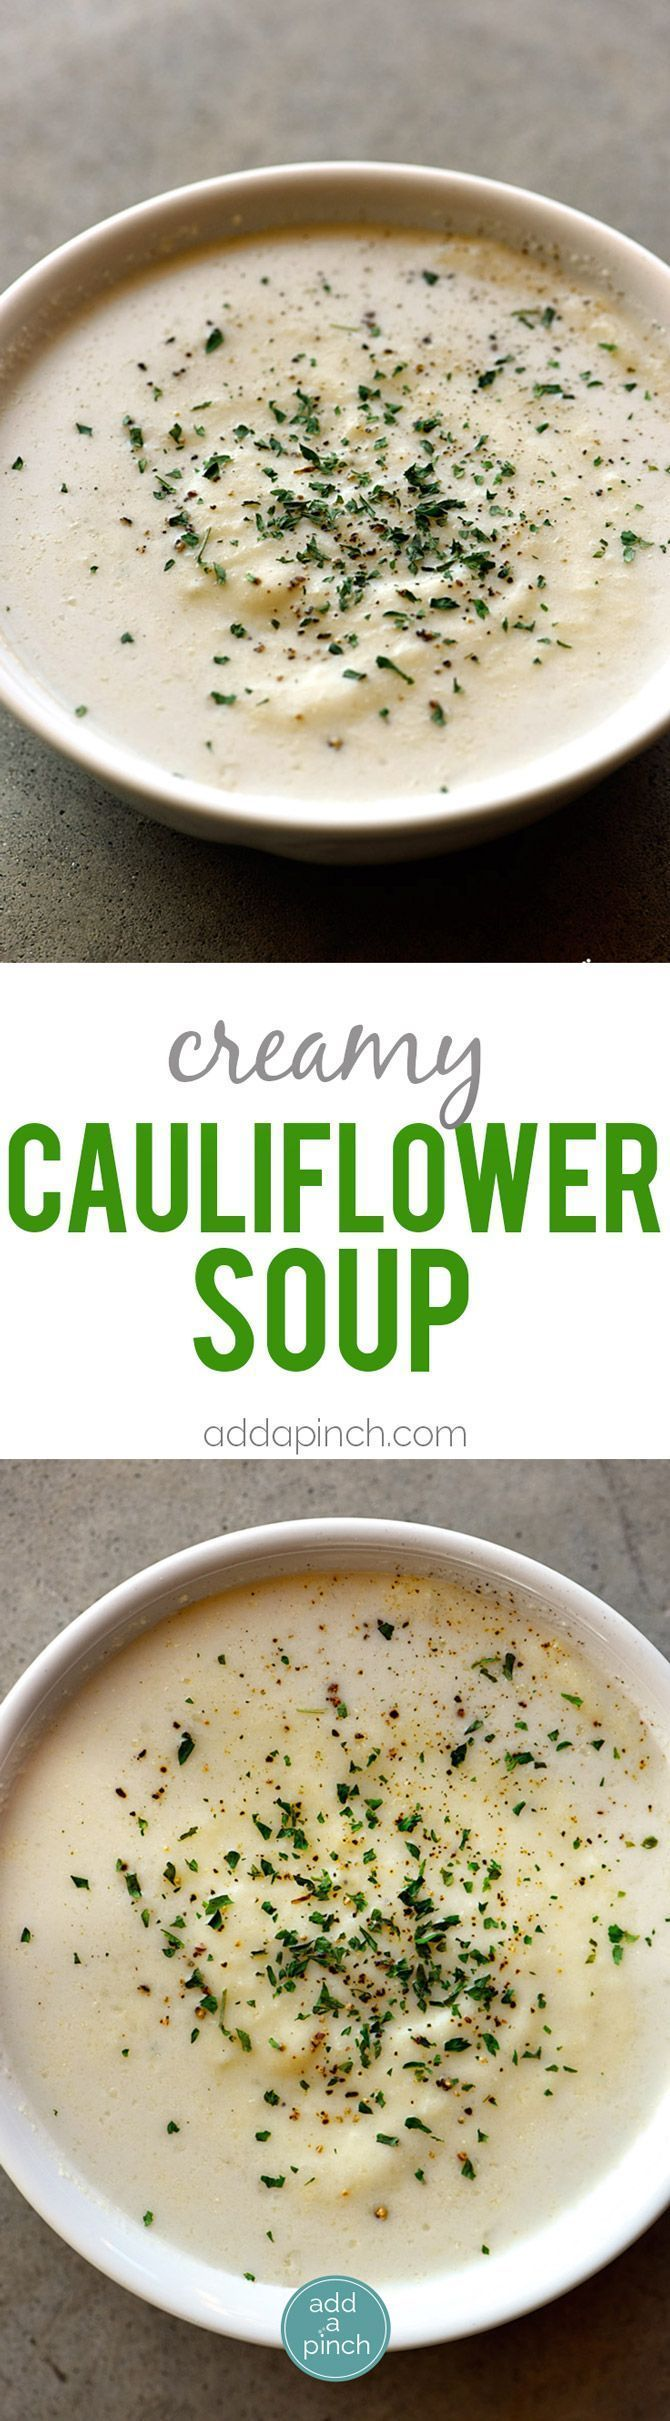 Creamy Cauliflower Soup Recipe - Creamy Cauliflower Soup makes a delicious and comforting soup recipe without a drop of cream! The garlic, onion, and cauliflower are blended together to create a dairy-free, creamy cauliflower soup recipe that everyone lov